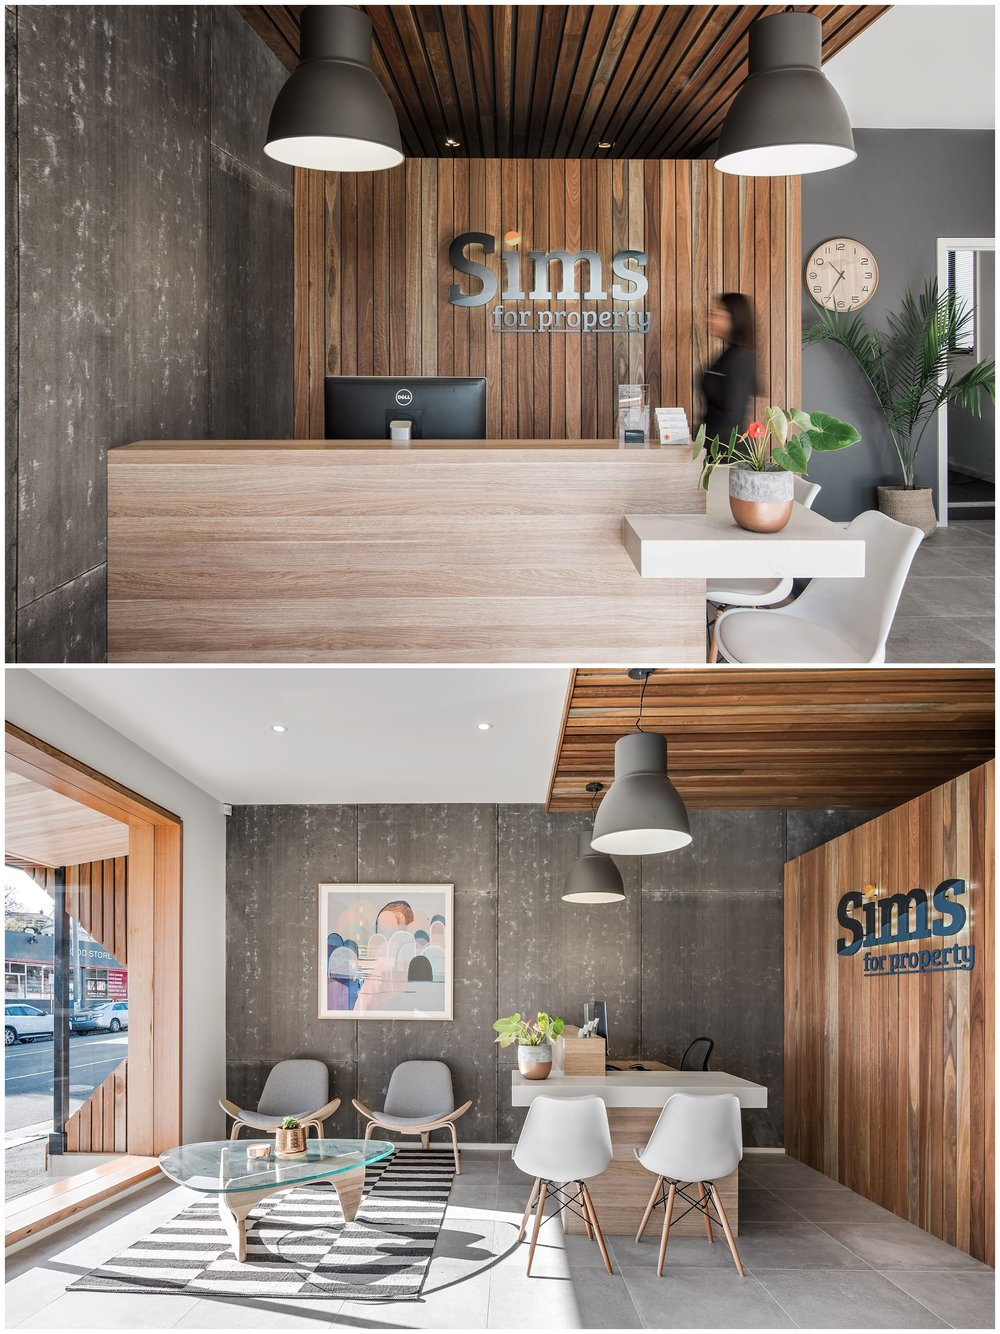 Sims_office_2016_collage_06.jpg